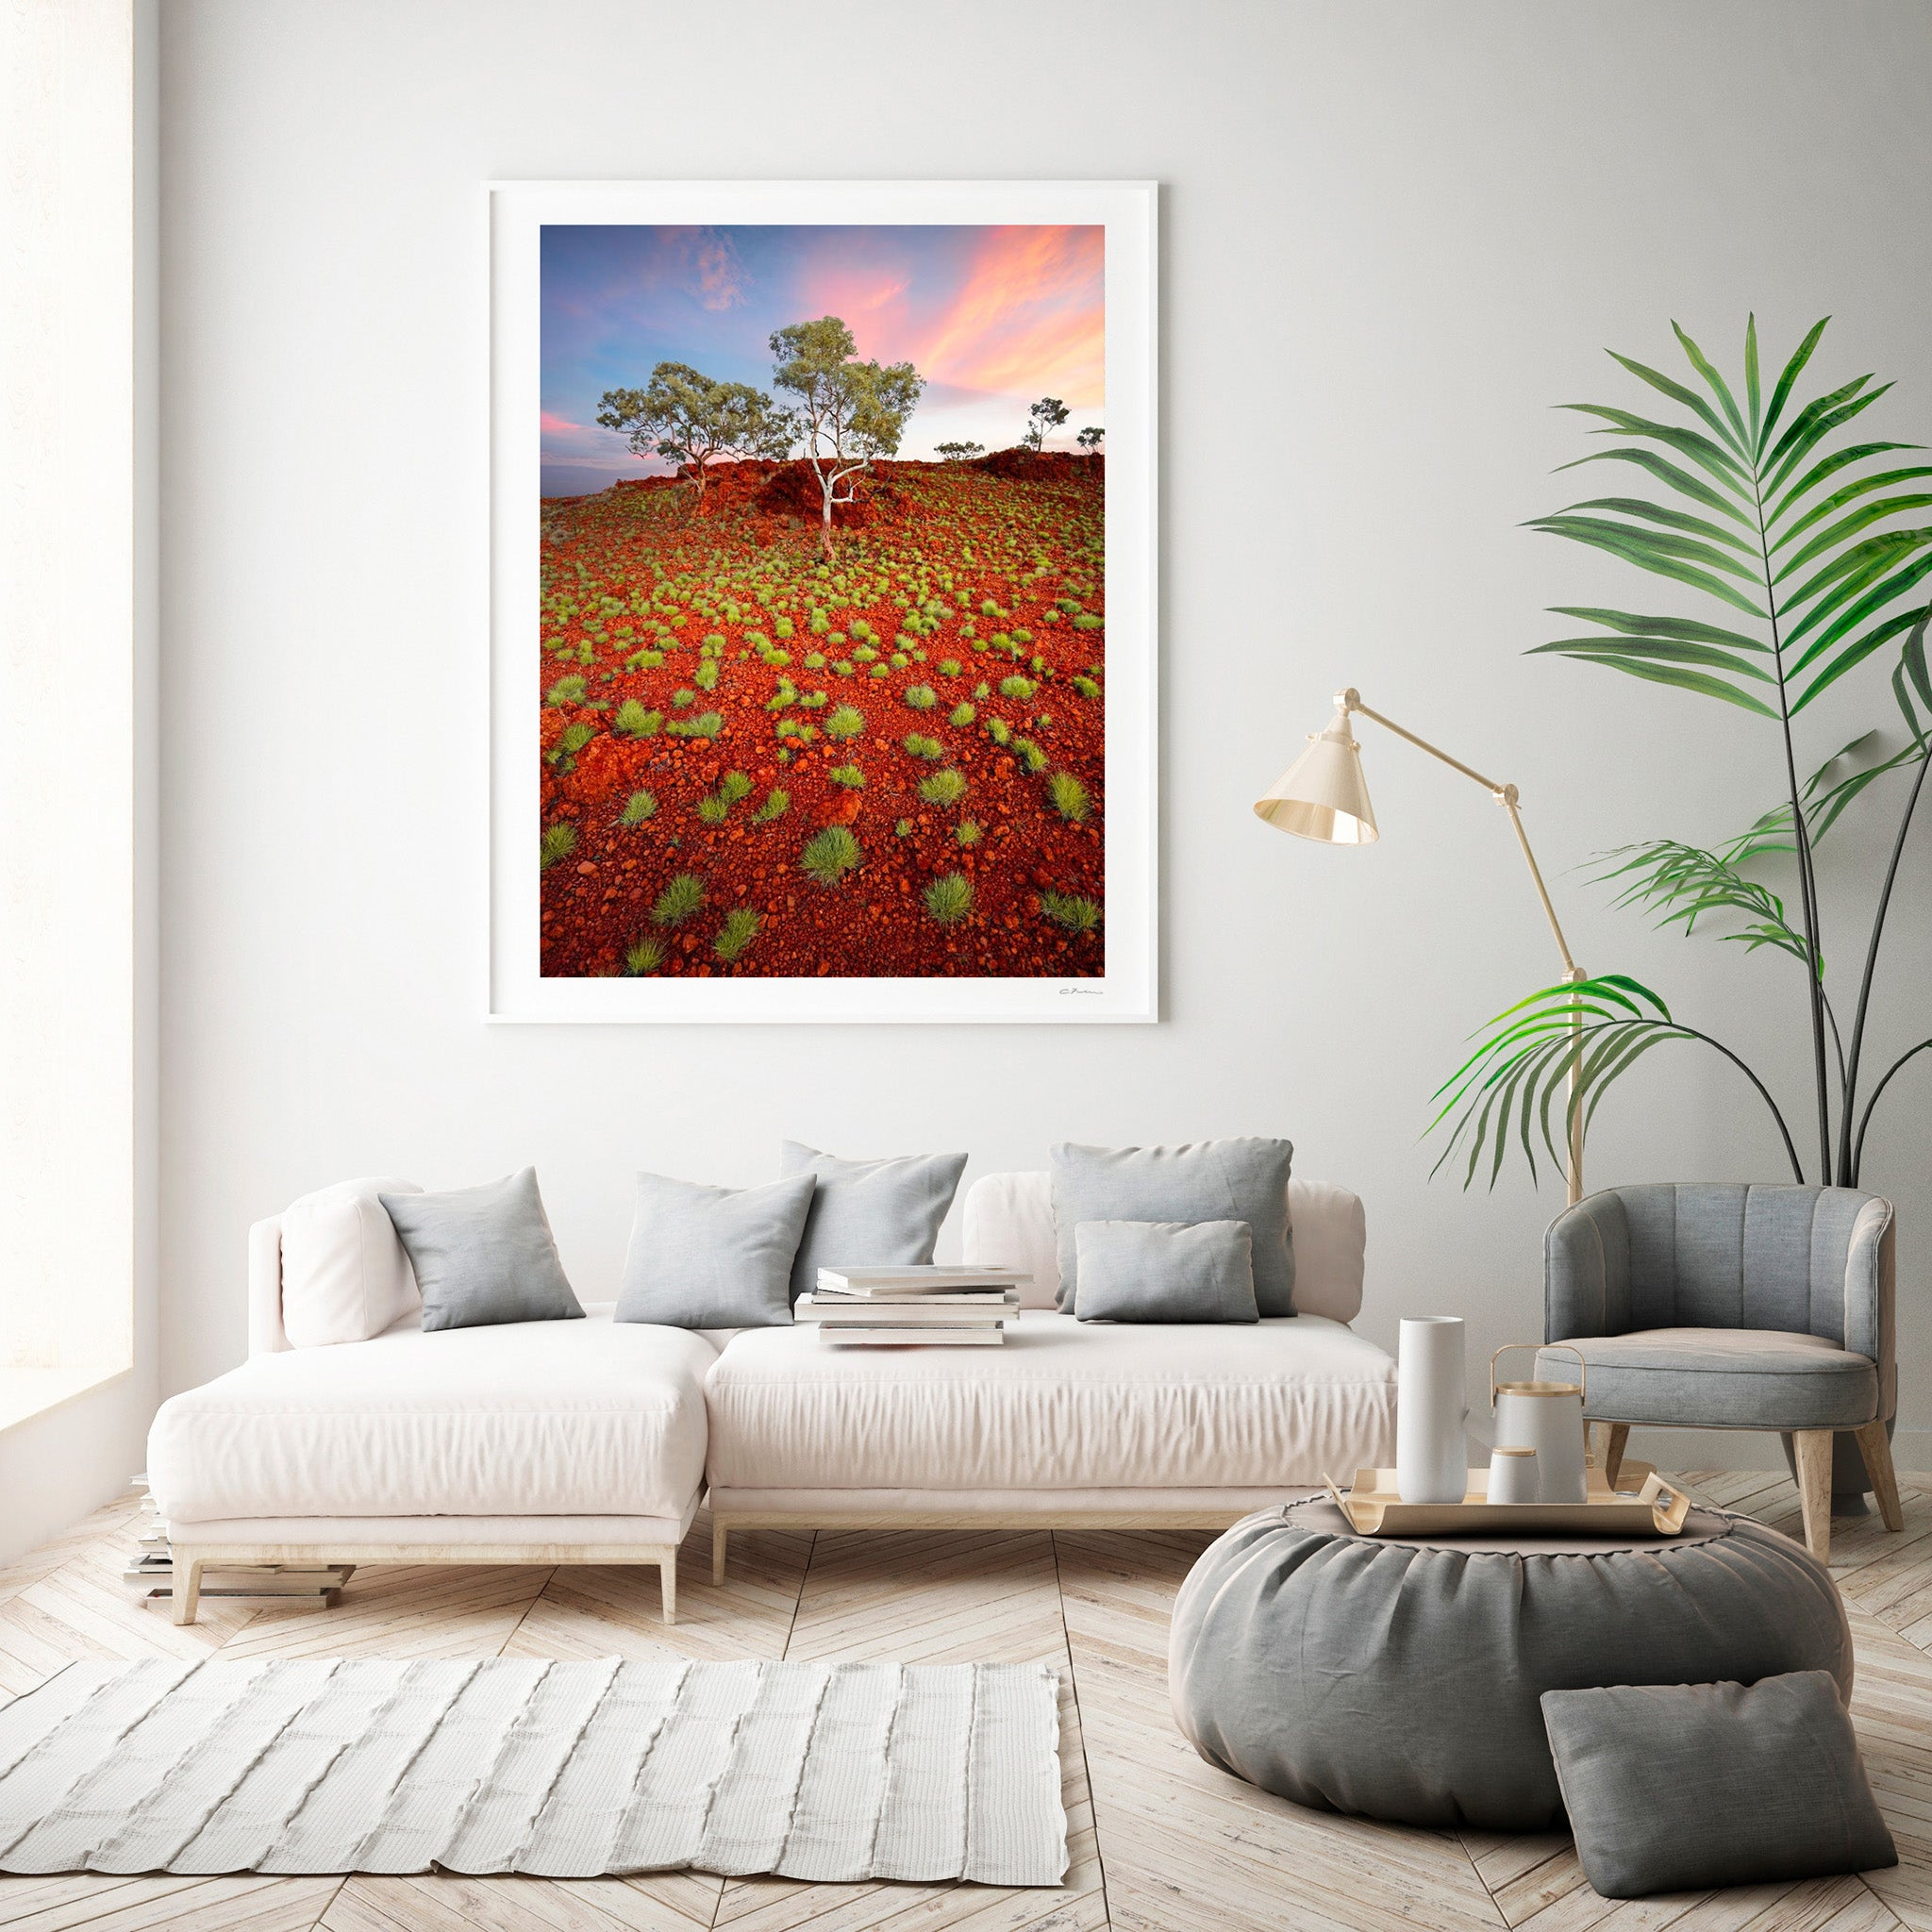 Lounge room with a Christian Fletcher limited edition photograph from Karijini National Park, Pilbara, North Western Australia.  Spinifex, trees at sunset.  Australian orange outback.